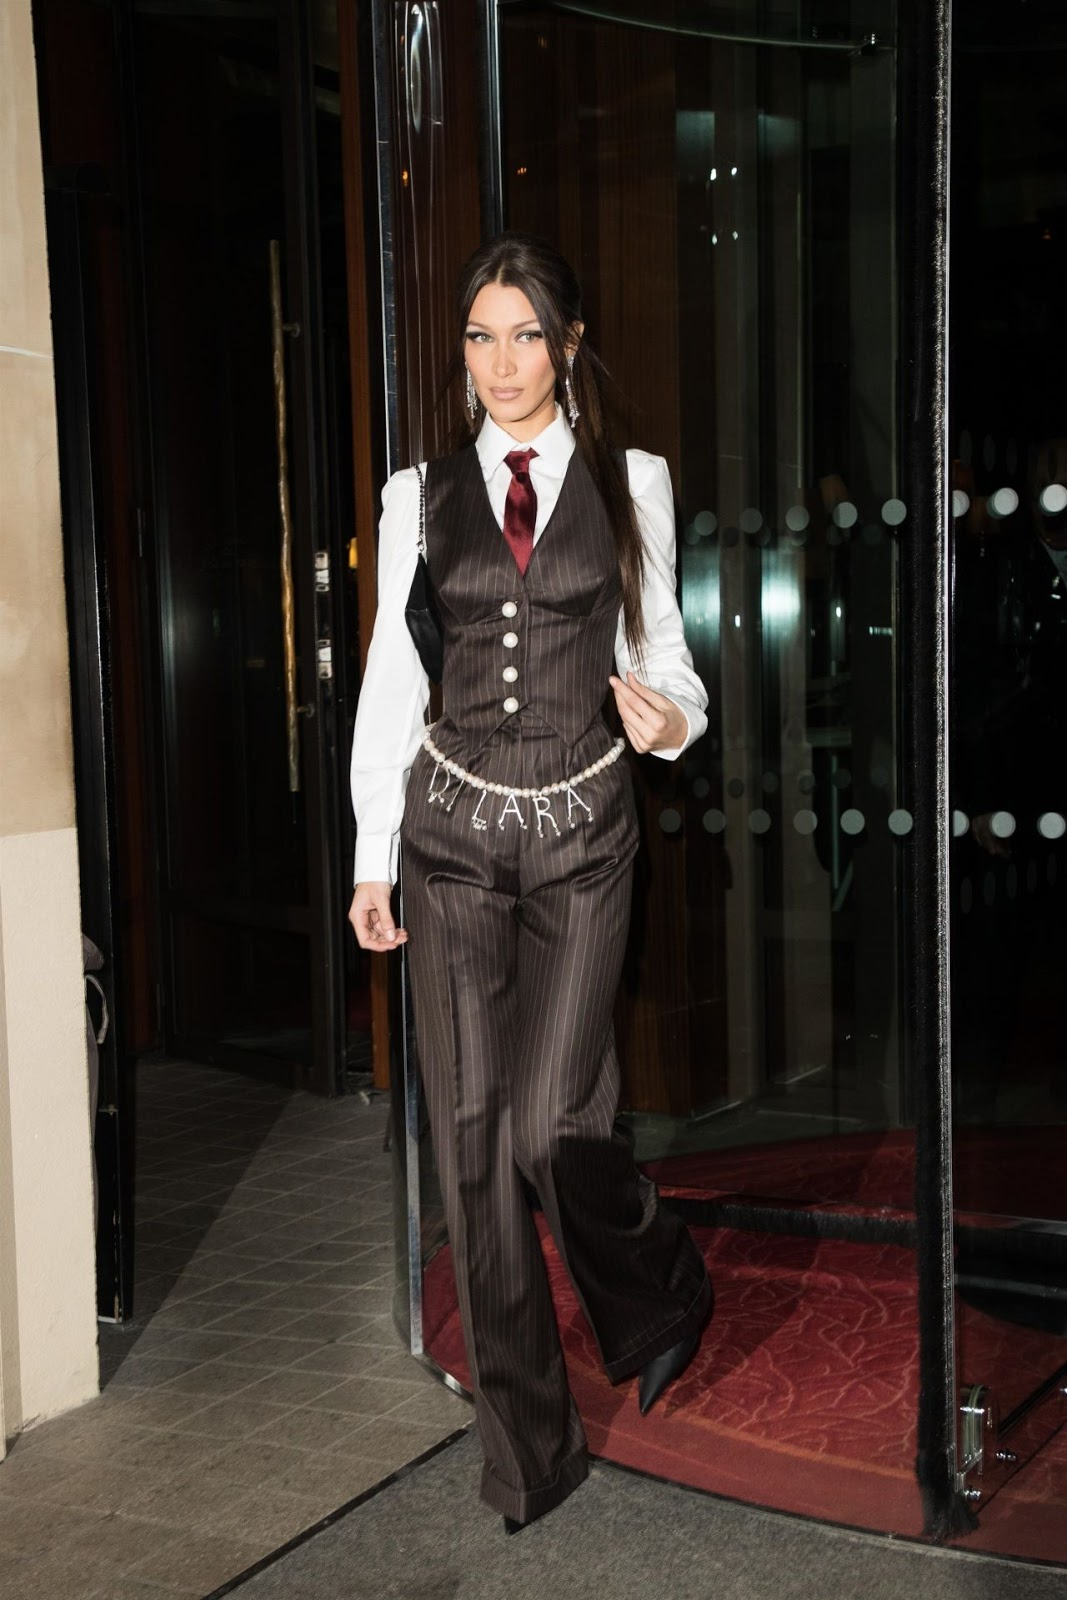 Bella Hadid is androgynous chic at the Vivienne Westwood after party in Paris